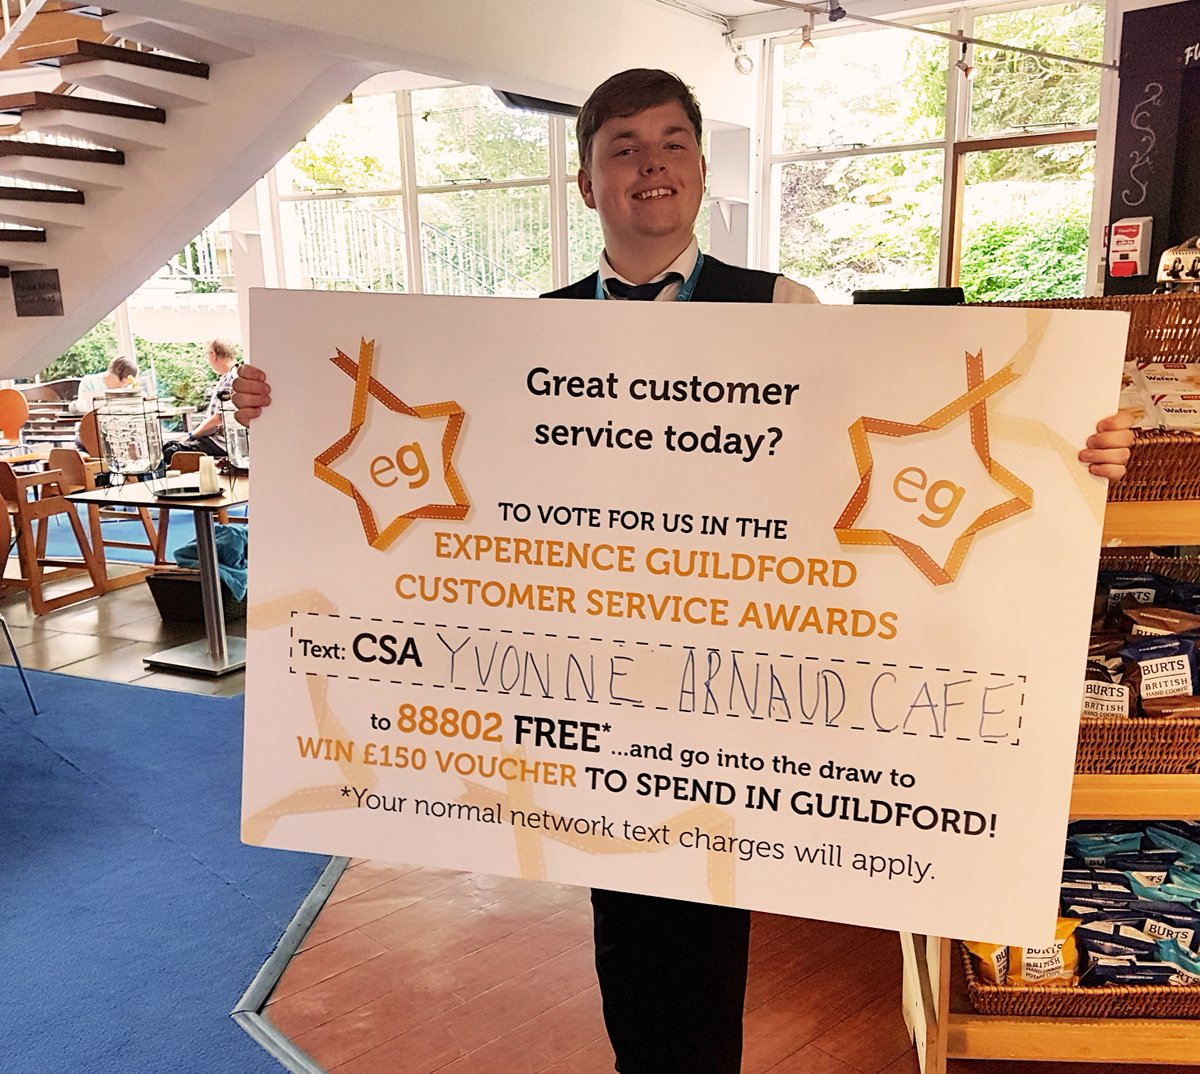 You only have 3 days left to vote for us in the @ExperienceGford #CustomerServiceAwards! Text CSA YVONNE ARNAUD CAFE or CSA YVONNE ARNAUD THEATRE to 88802 for FREE to vote and be entered into a #PrizeDraw to win £150 of #Guildford vouchers!  http:// ow.ly/bE3k50v1IvB    <br>http://pic.twitter.com/CeDOv8X1ON